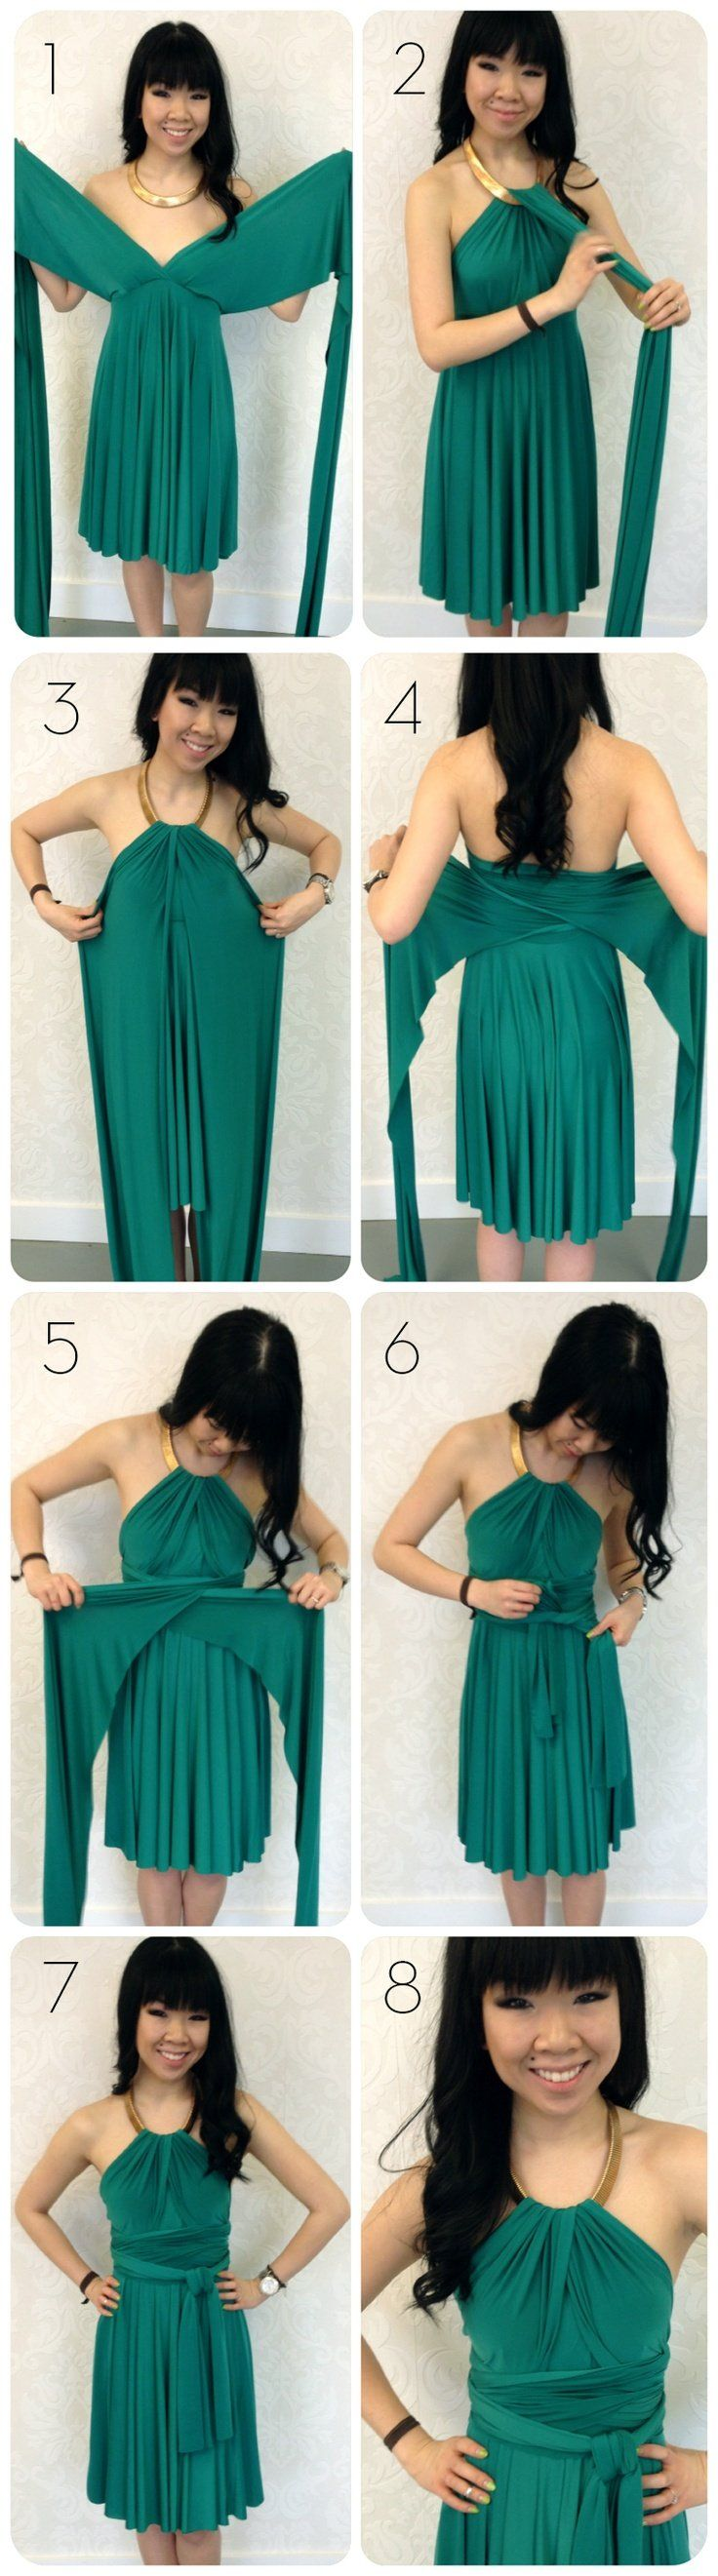 43b6aa9bf71 emerald green dress with gold collar – emerald green convertible dress –  how to wear infinity dress with metal collar